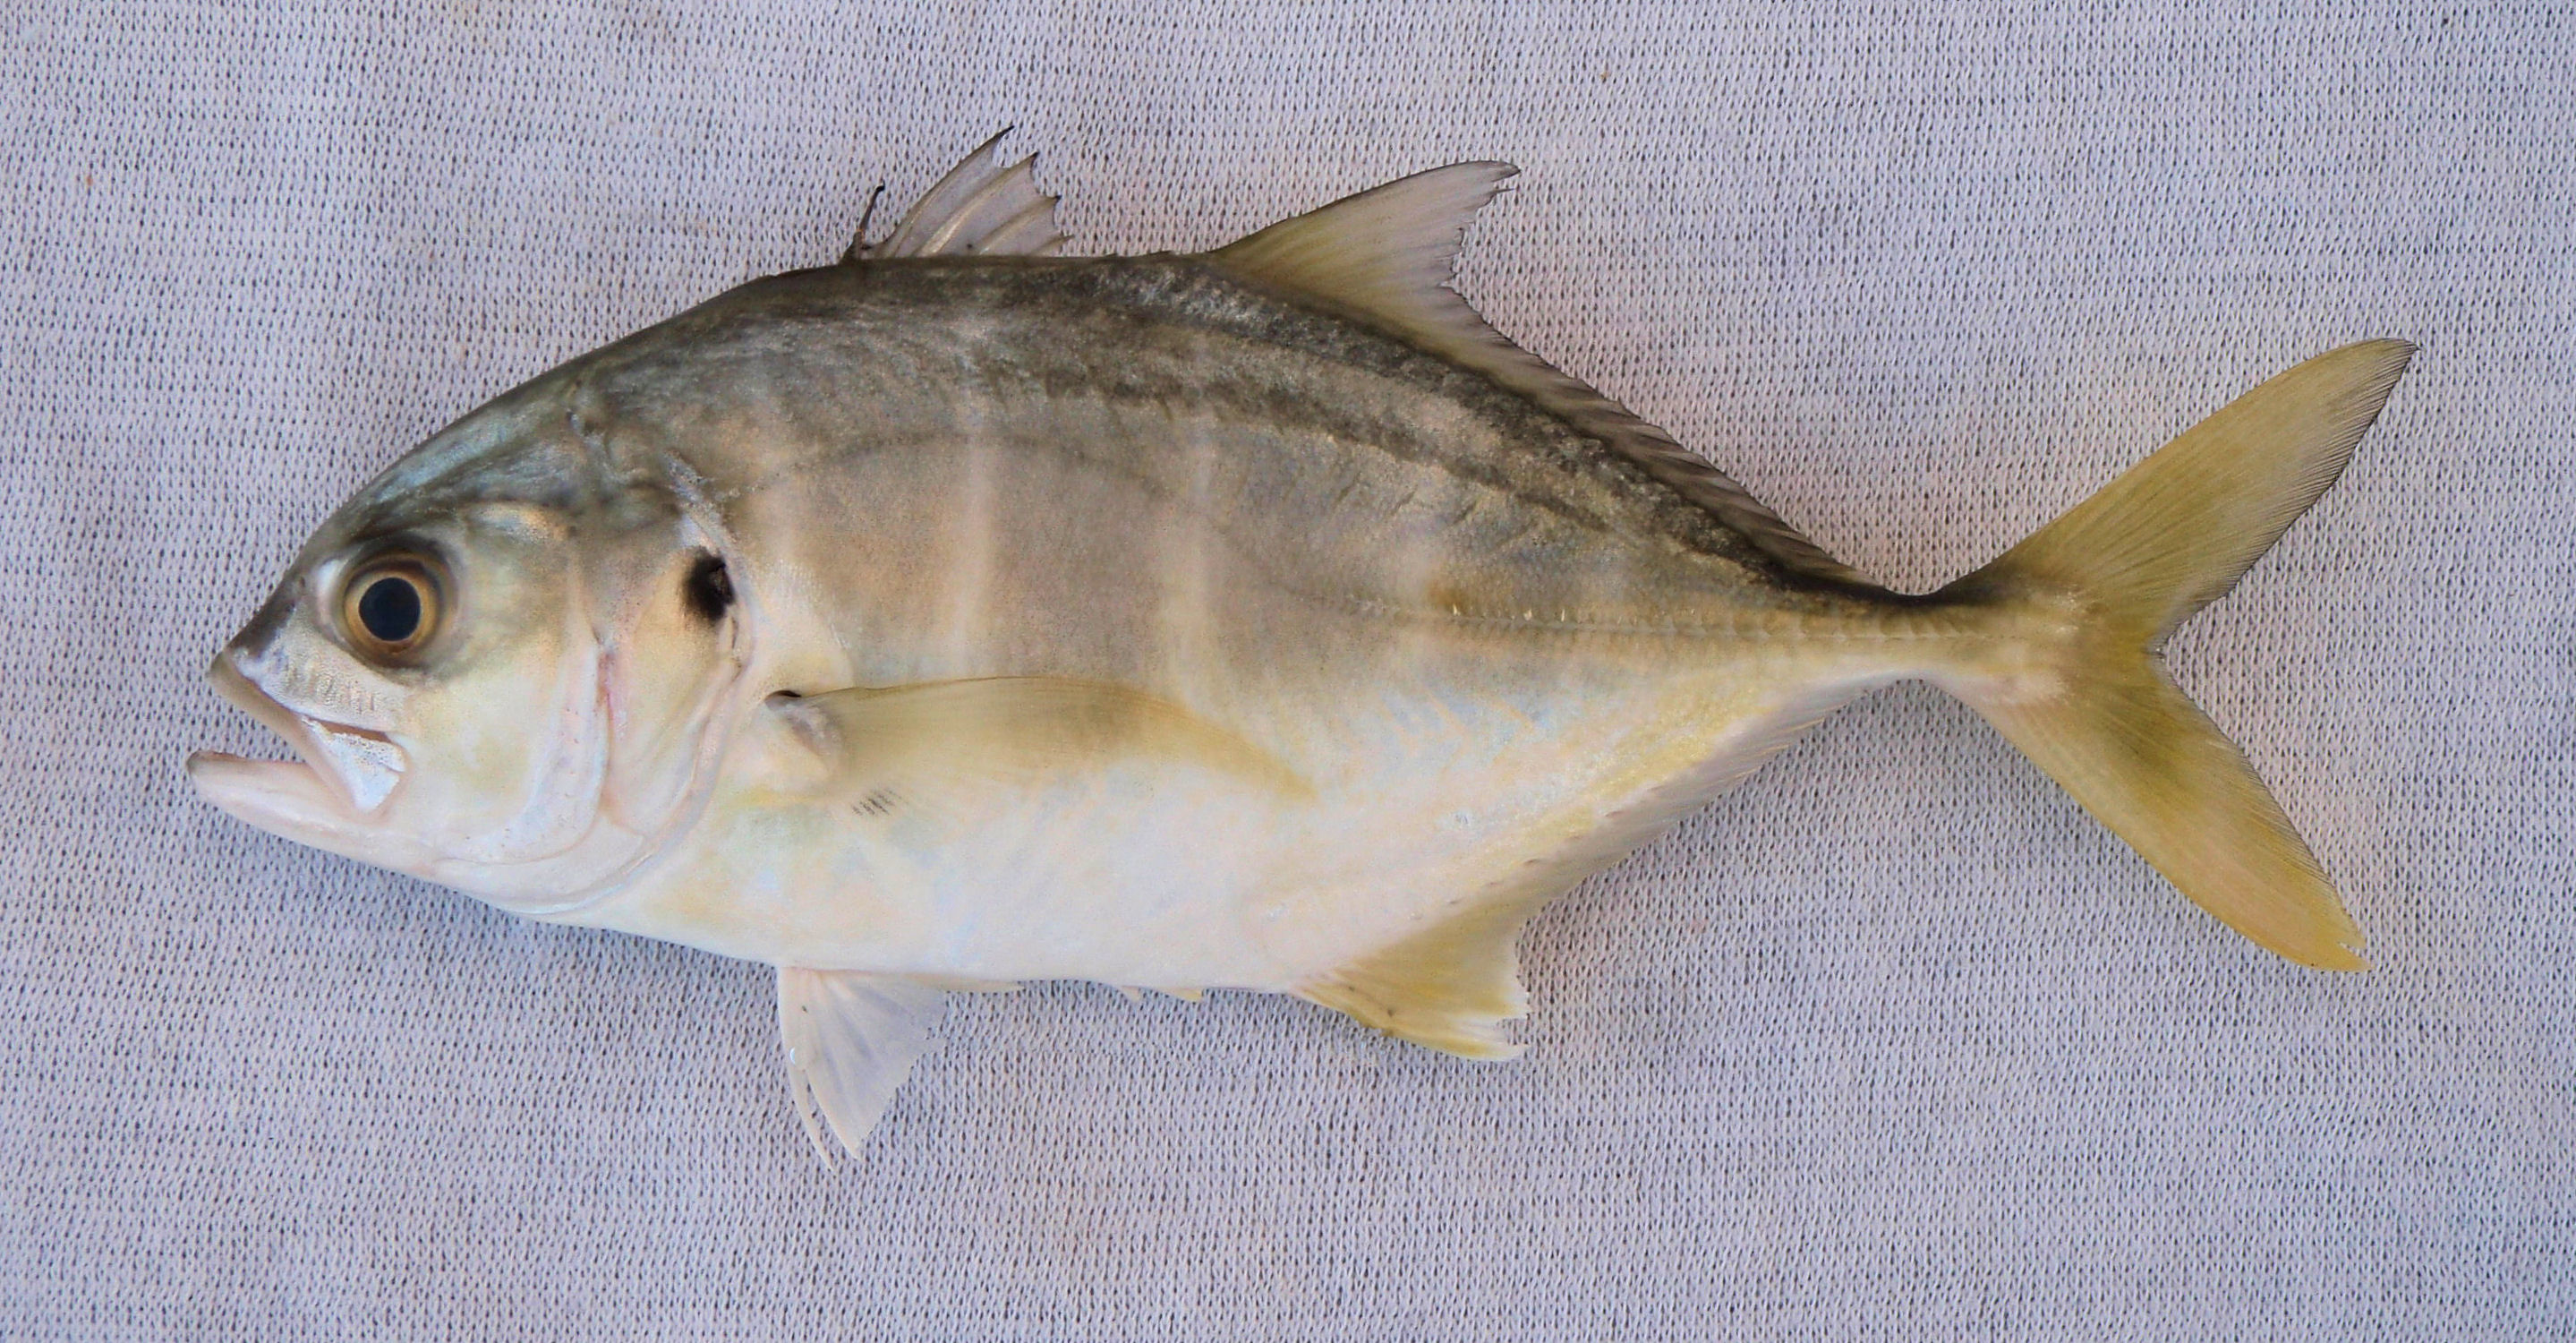 Pacific crevalle jack mexico fish marine life birds for What is a jack fish